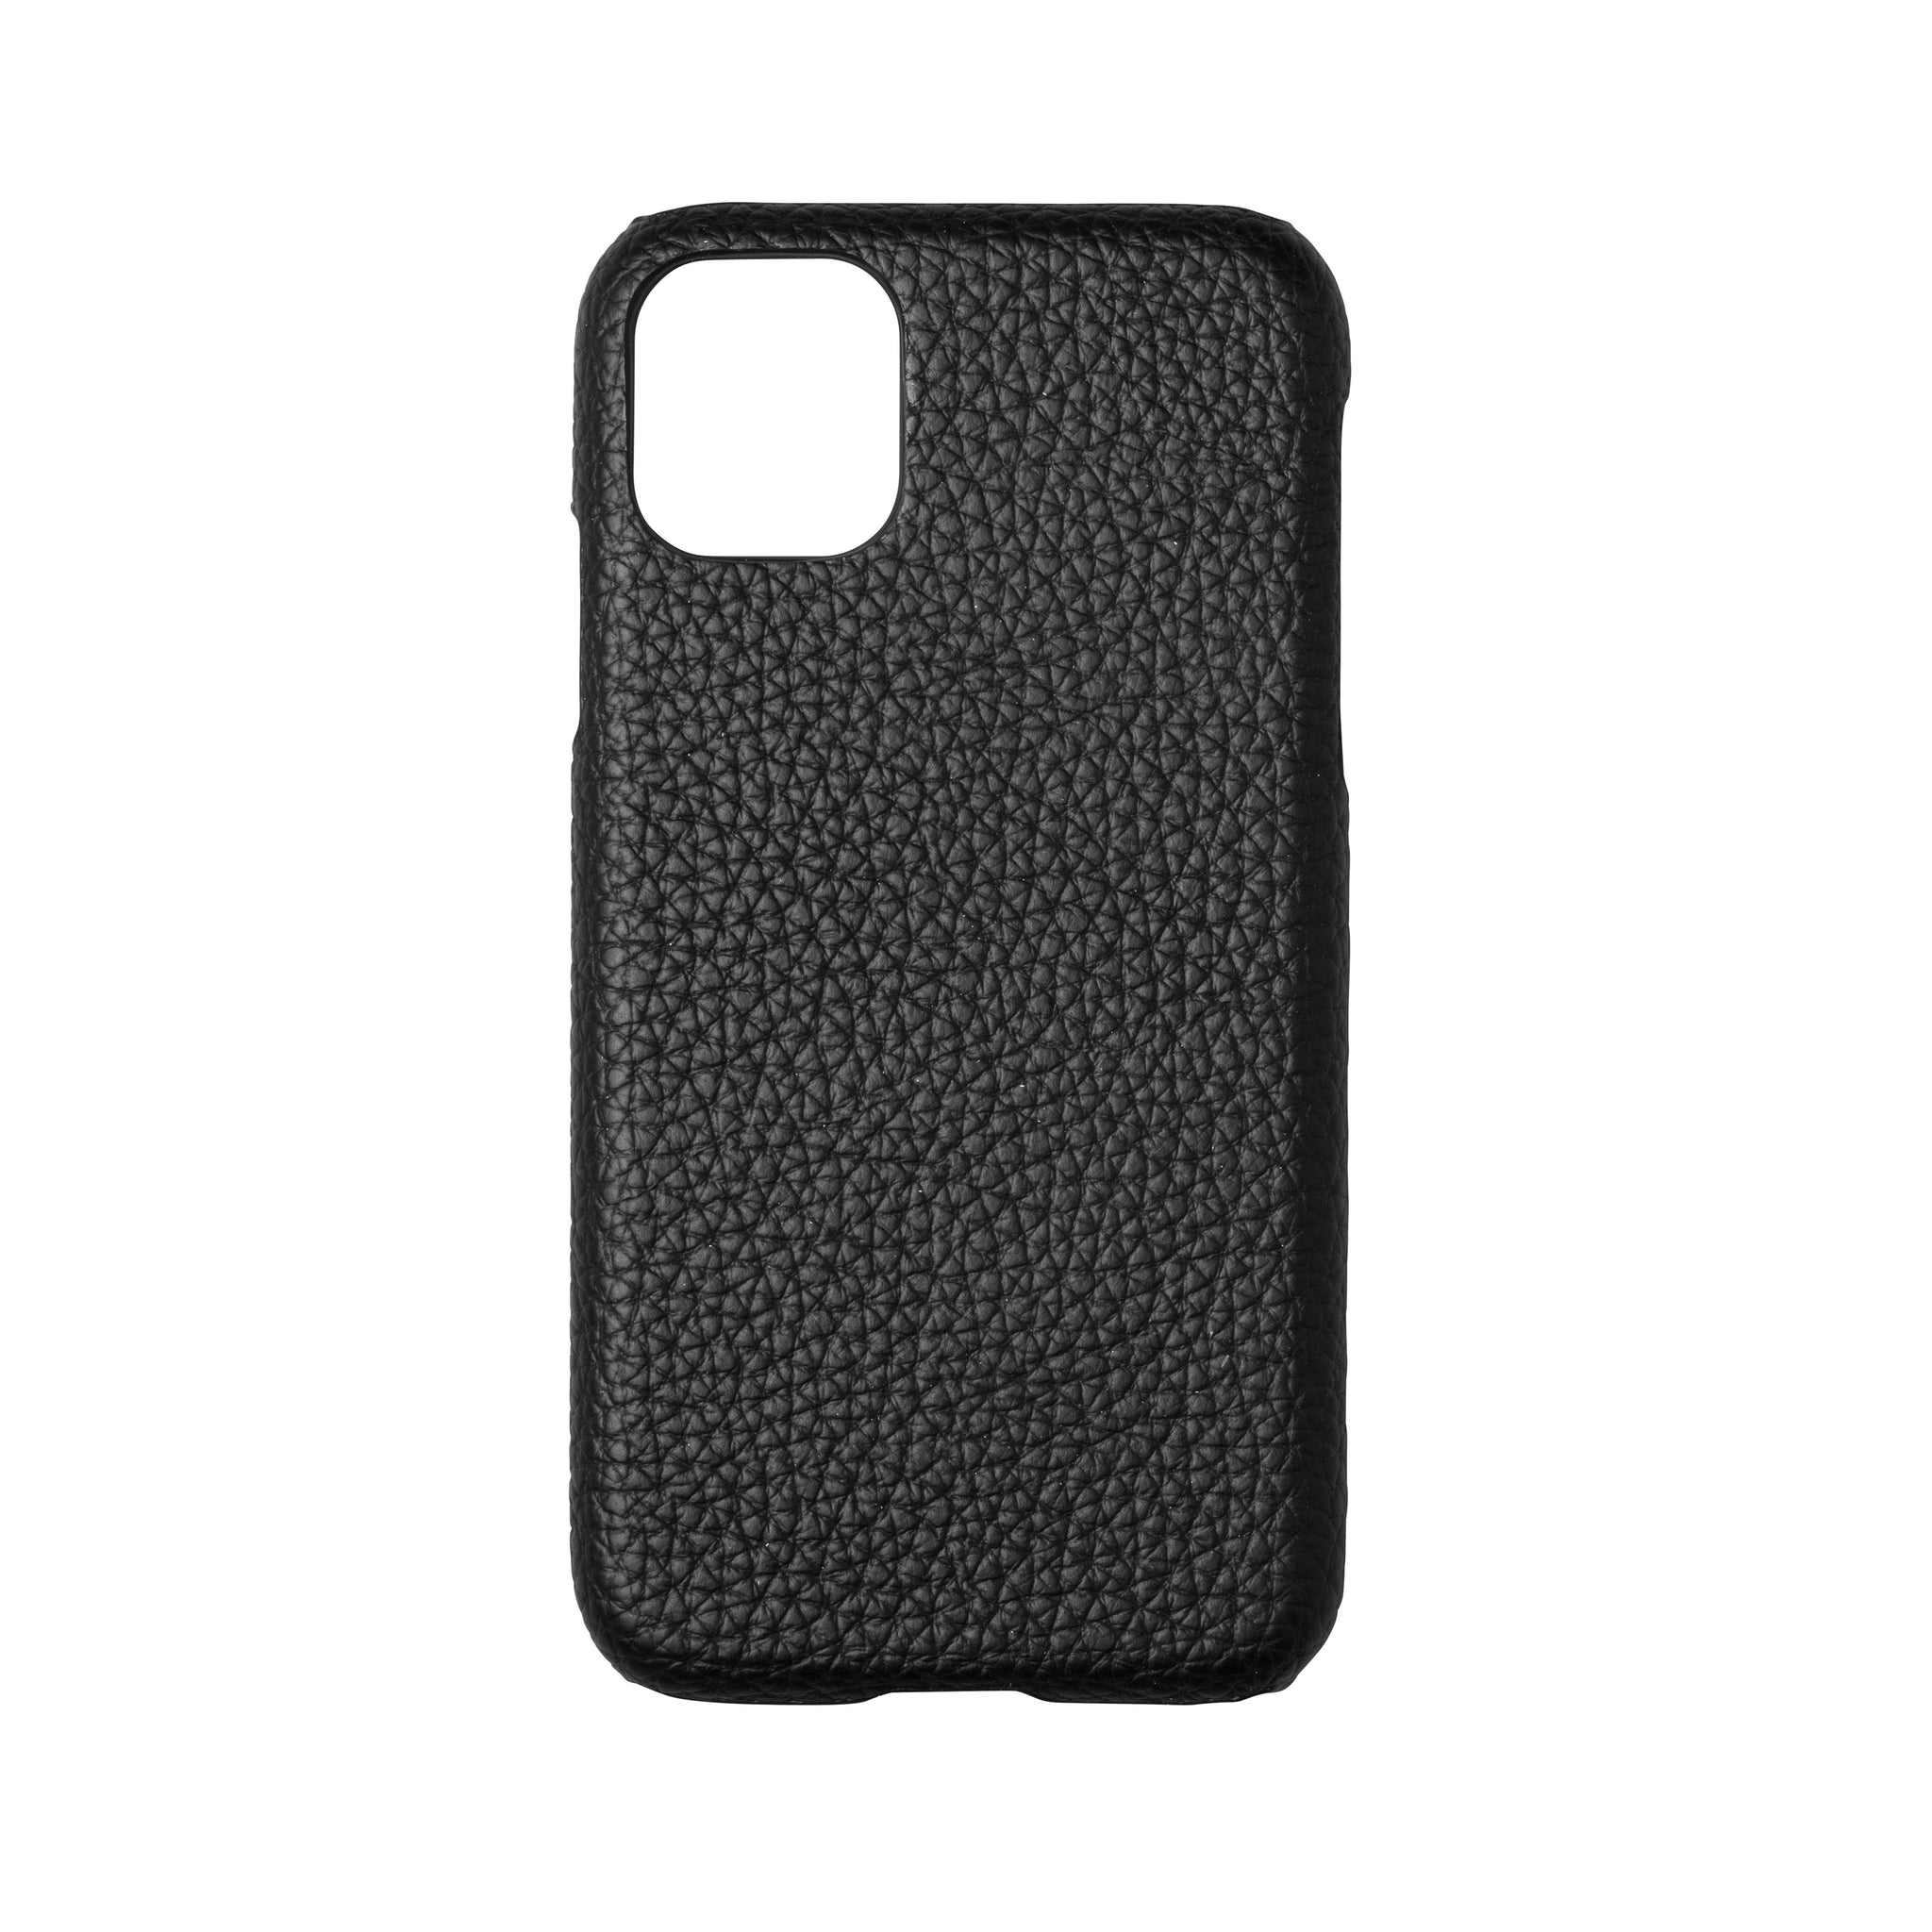 Jet Black Phone Case (iPhone 11)